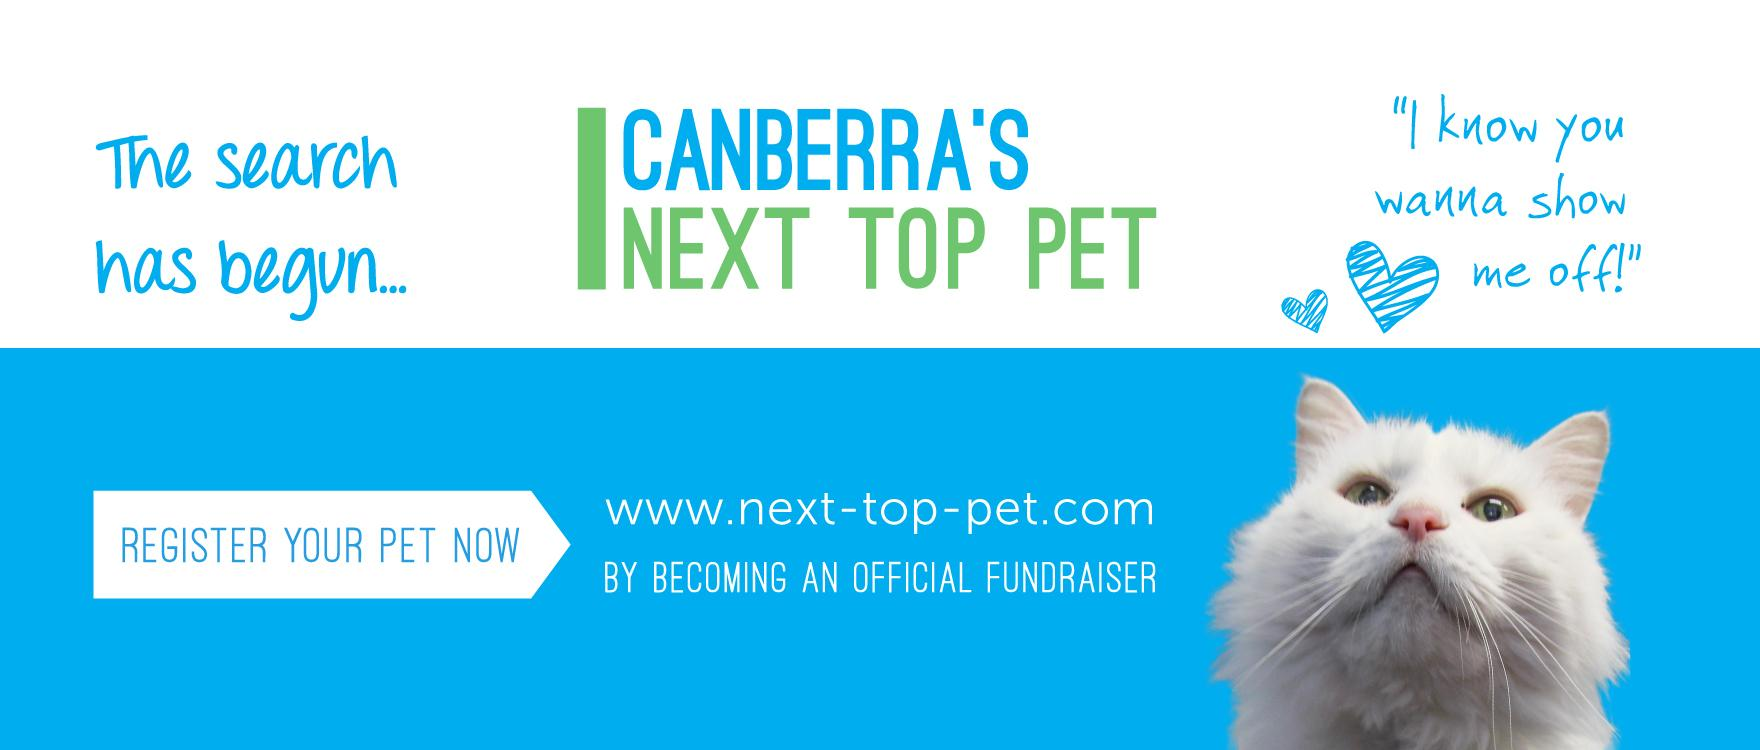 Your pet could be Canberra's Next Top Pet!